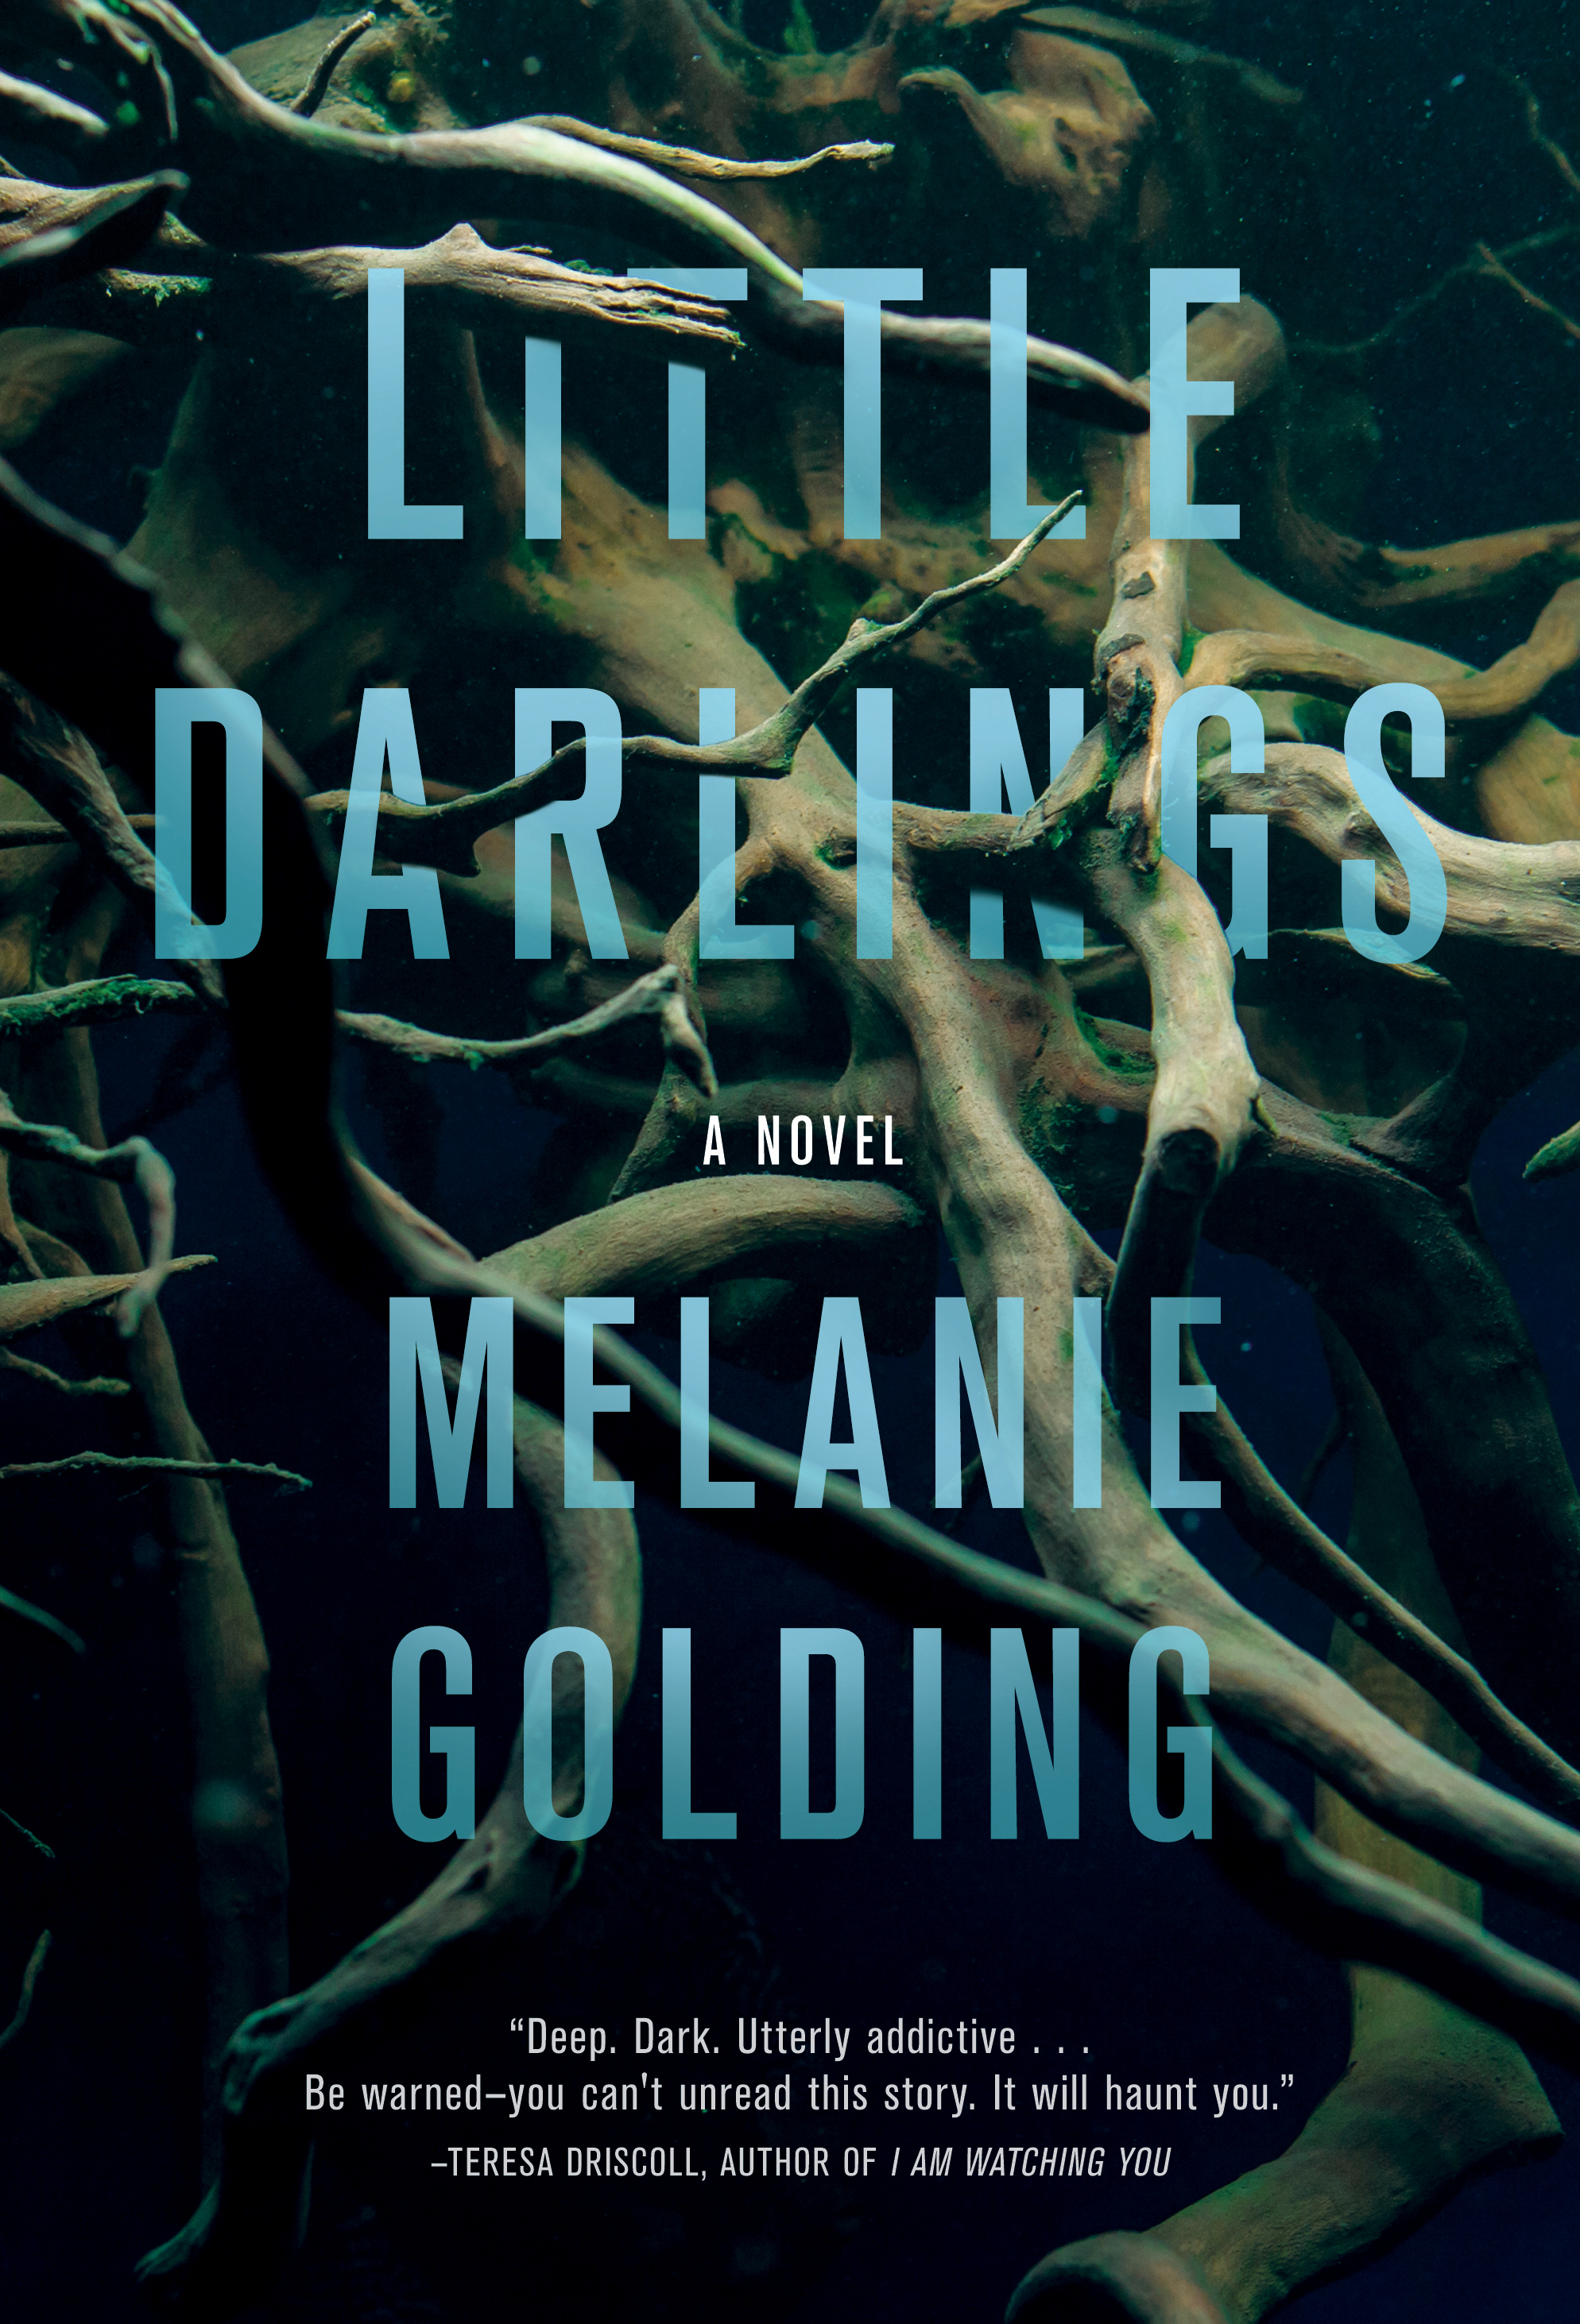 Image result for little darlings book